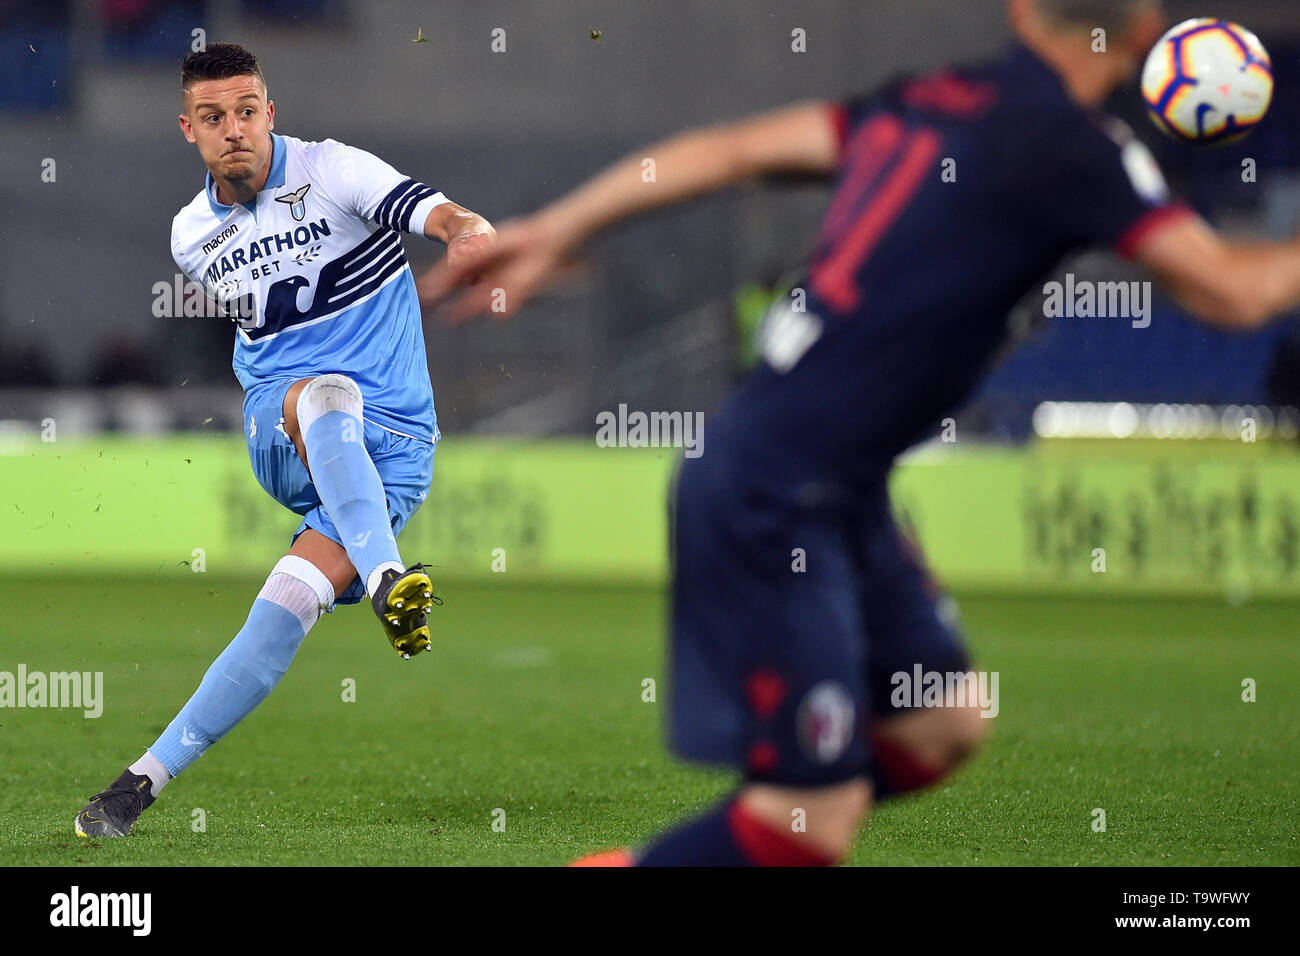 Rome, Italy. 21st May, 2019. Serie A Lazio vs Bologna Stadio Olimpico.Rome 20-05-2019 In the picture Sergej Milinkovic Savic scores the goal on a free kick Photo Photographer01 Credit: Independent Photo Agency/Alamy Live News - Stock Image